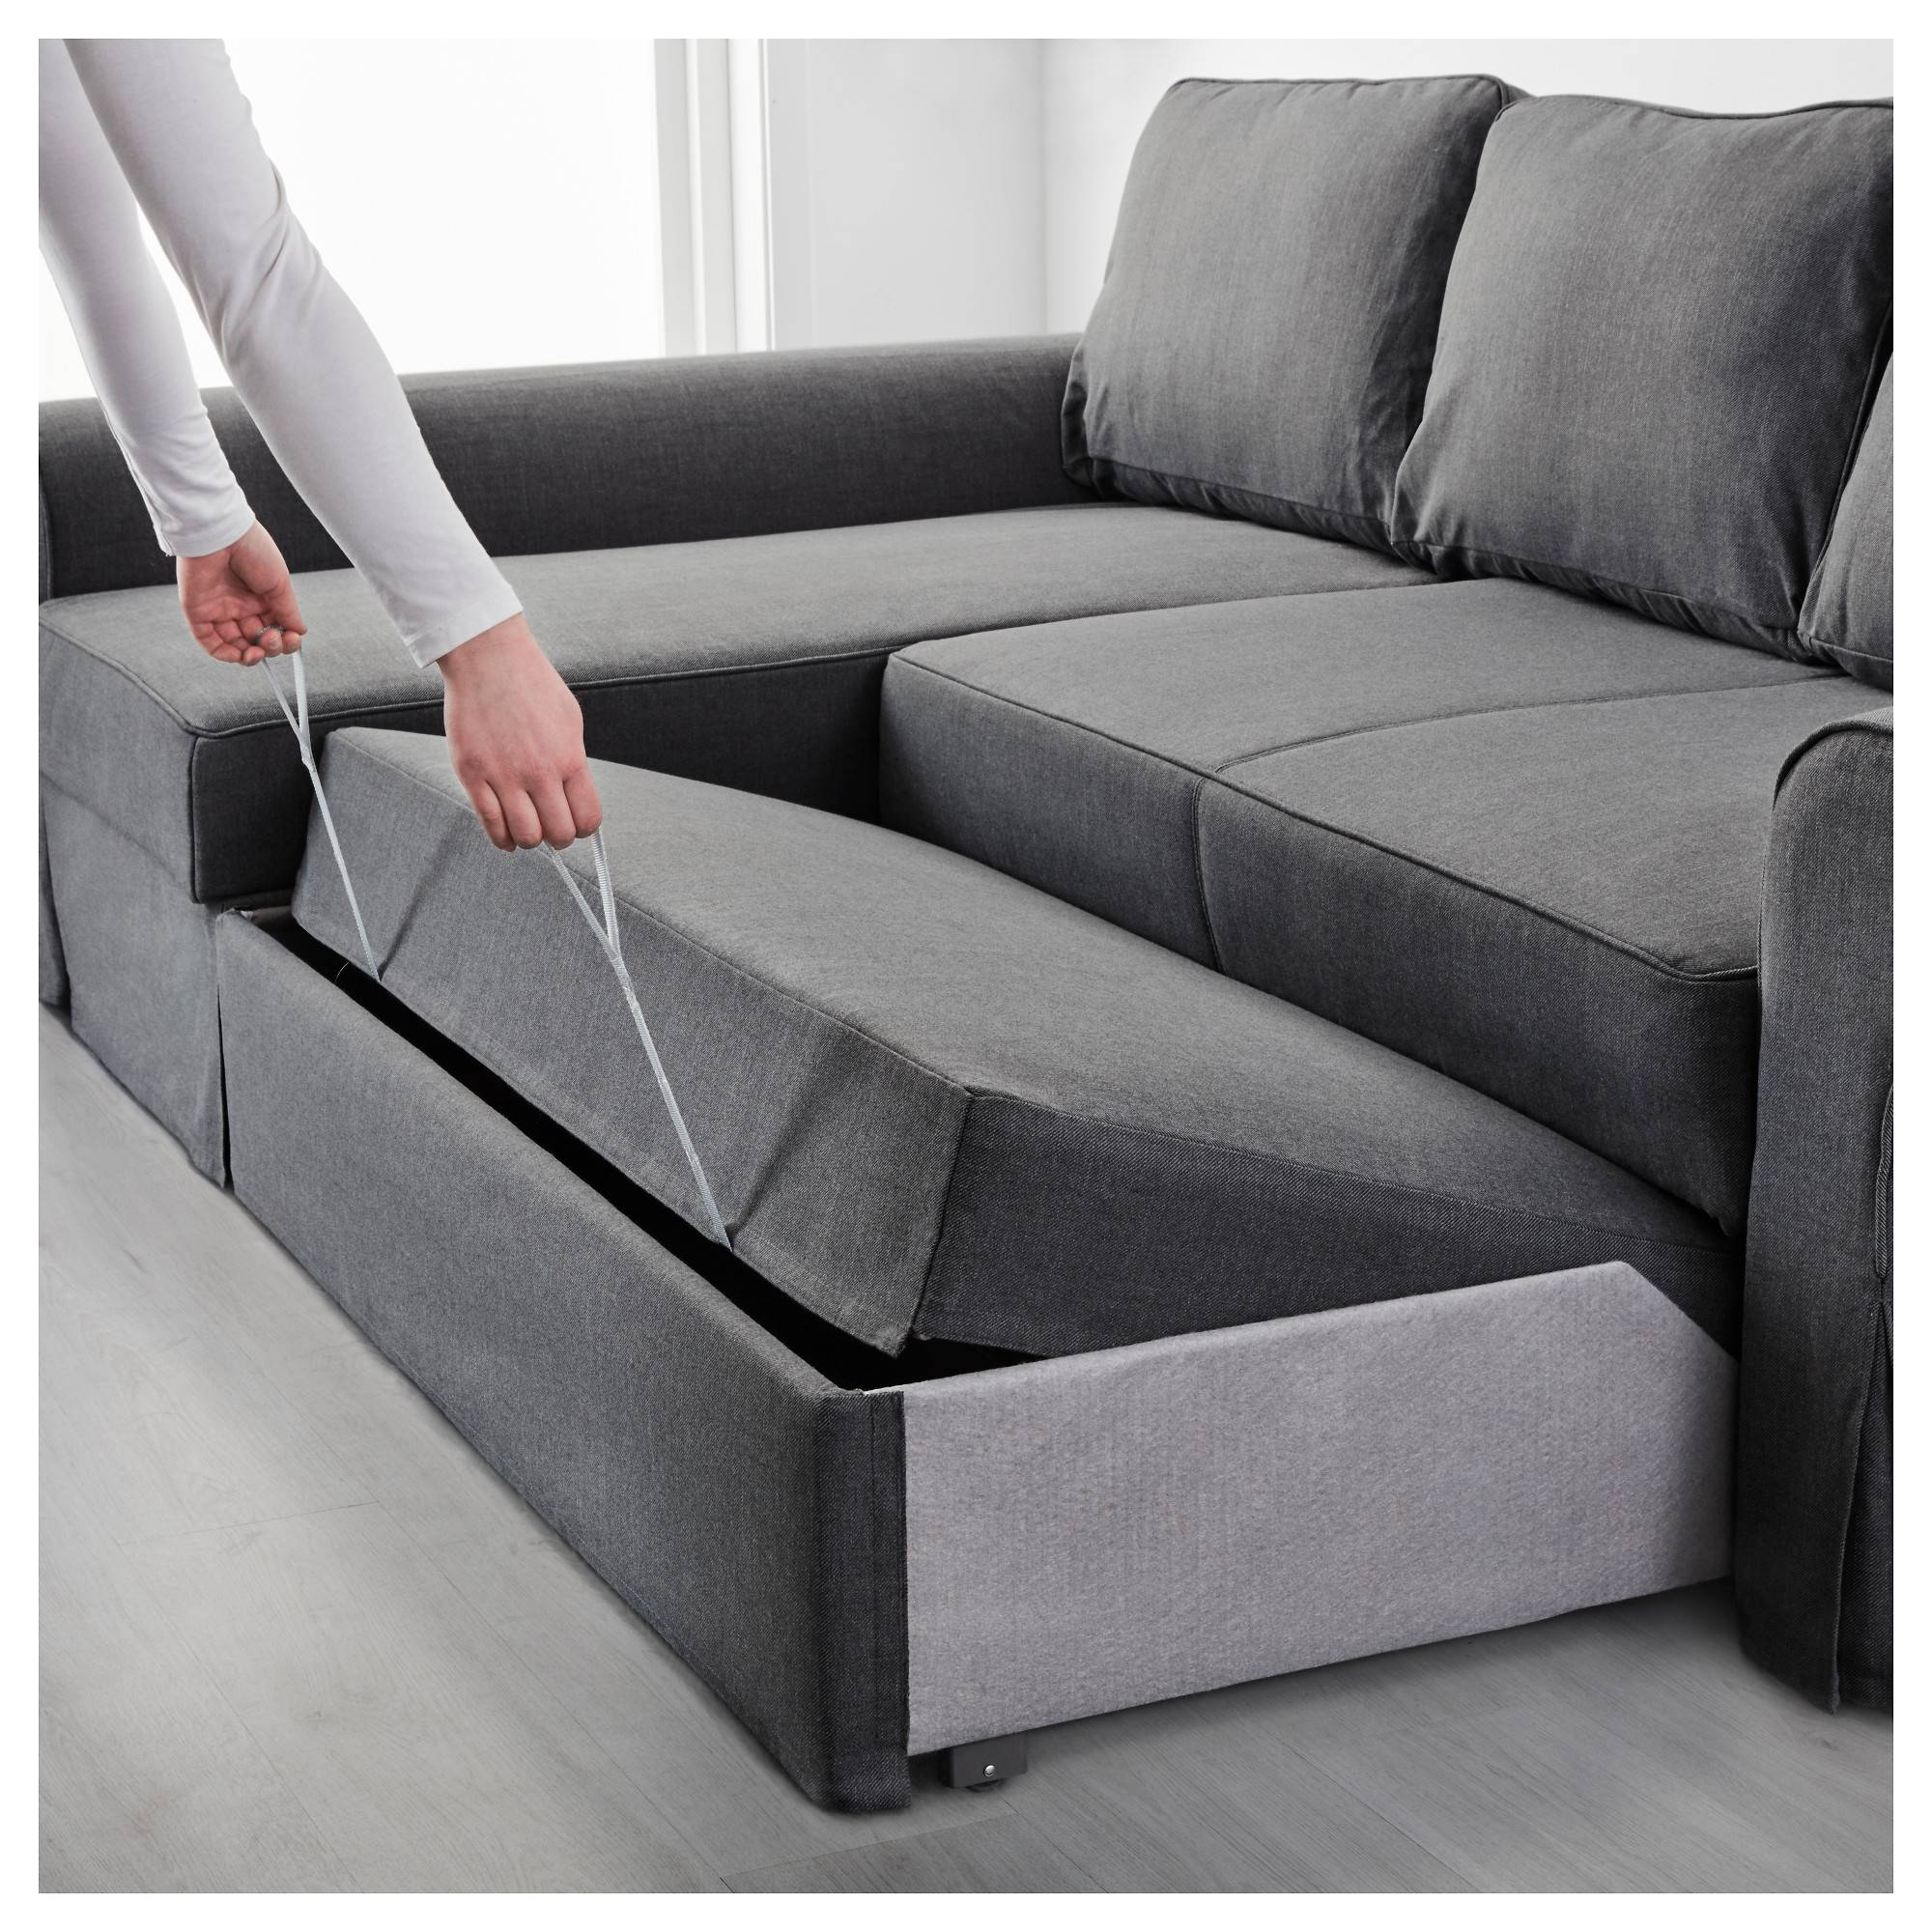 Sofas: Sofa Chaise Convertible Bed | Cheap Futons For Sale pertaining to Cheap Sofa Beds (Image 28 of 30)